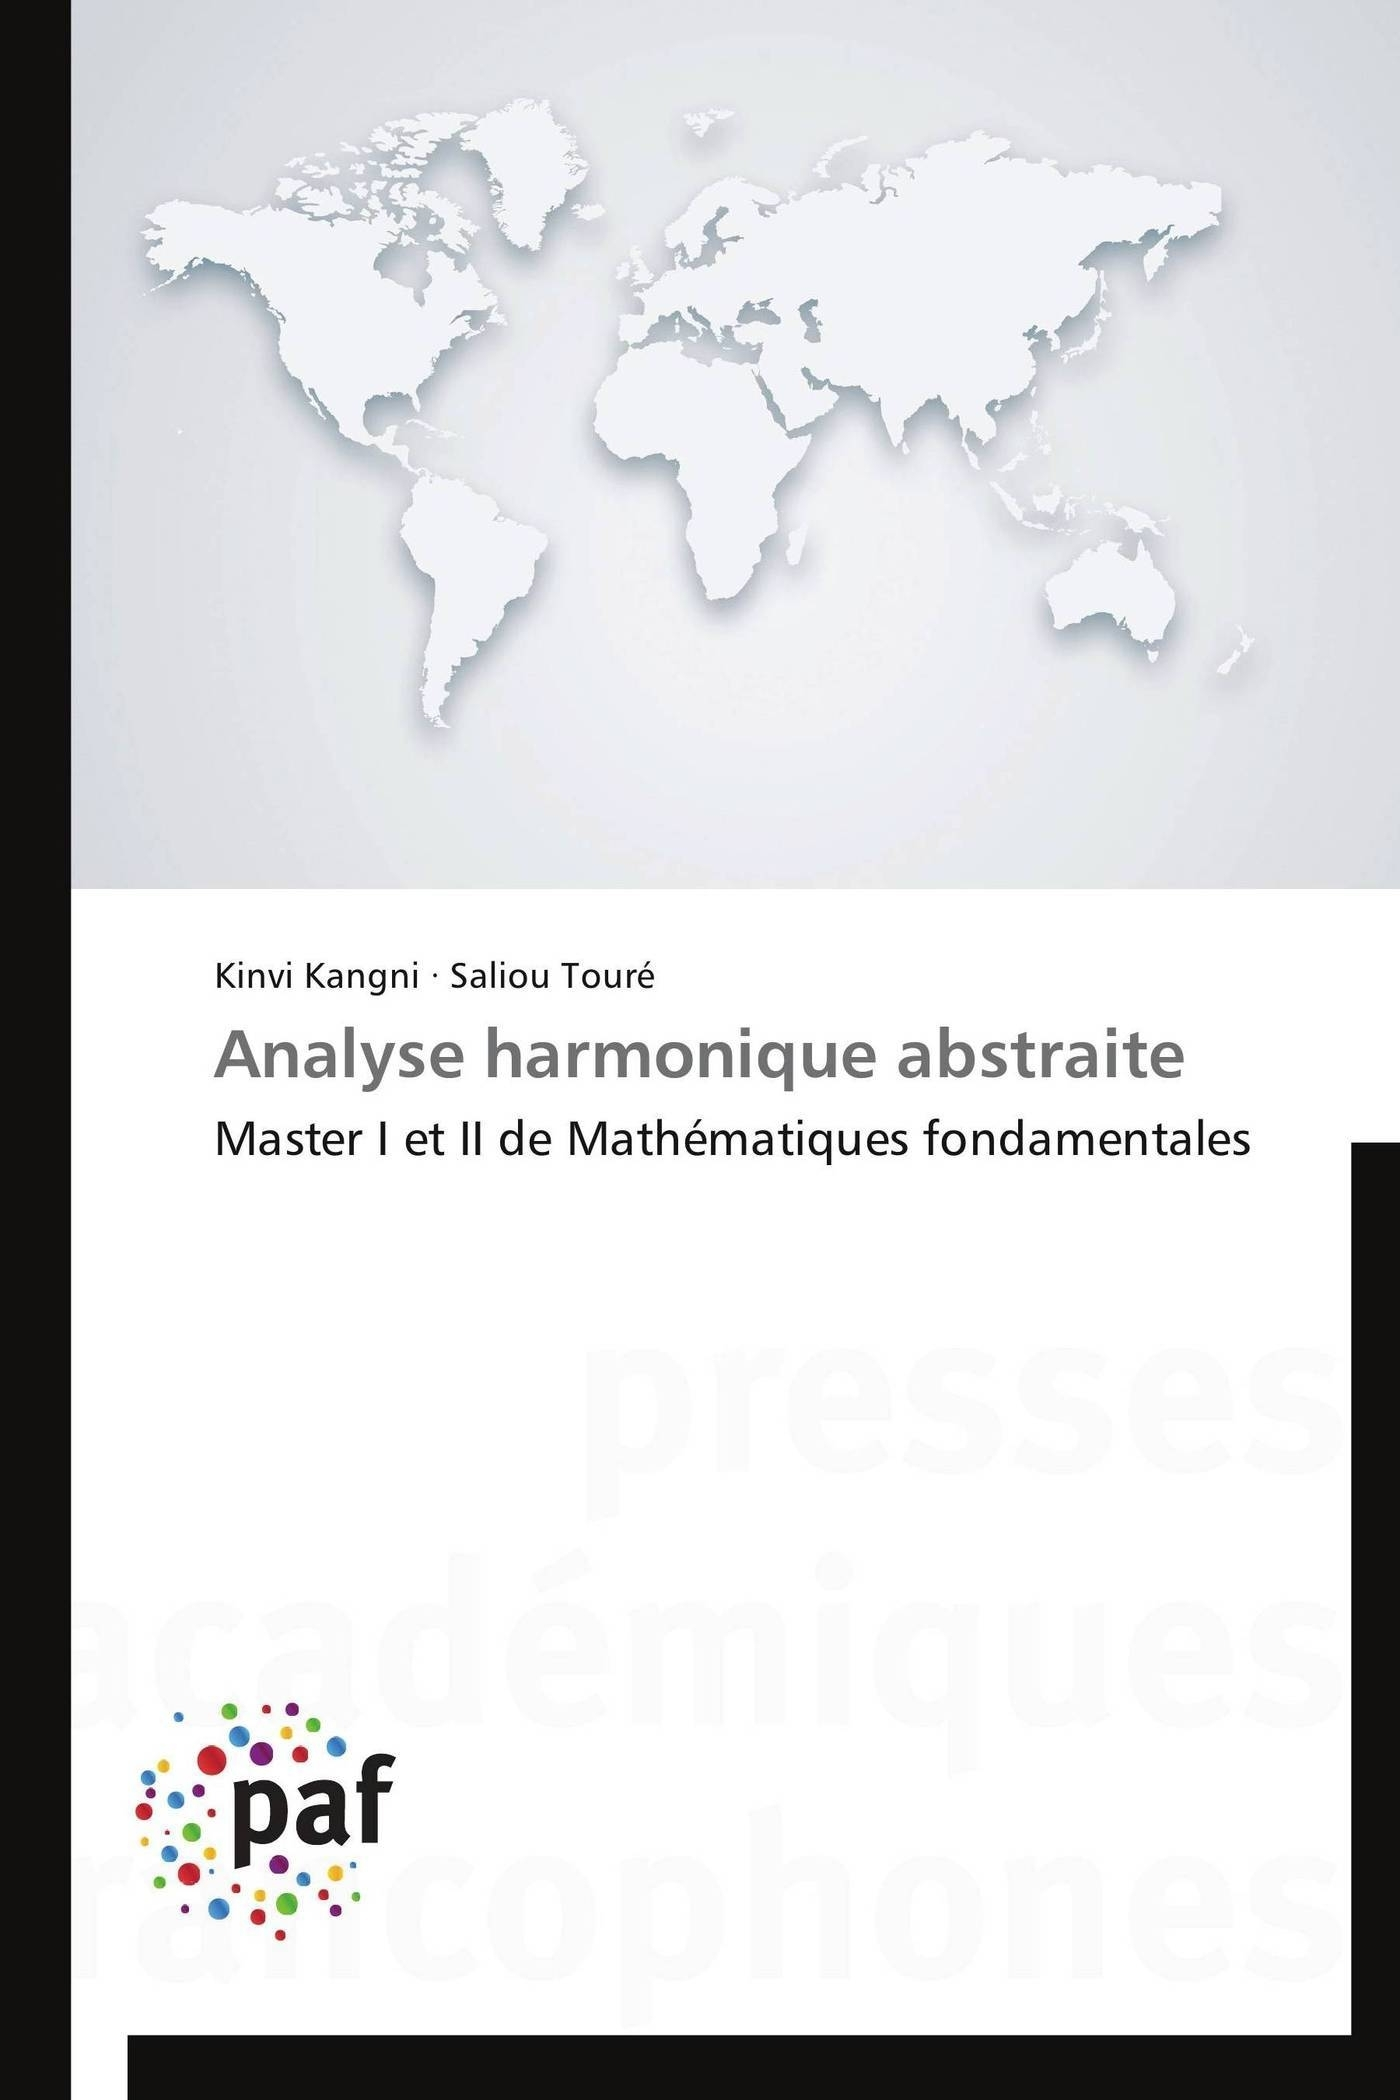 ANALYSE HARMONIQUE ABSTRAITE